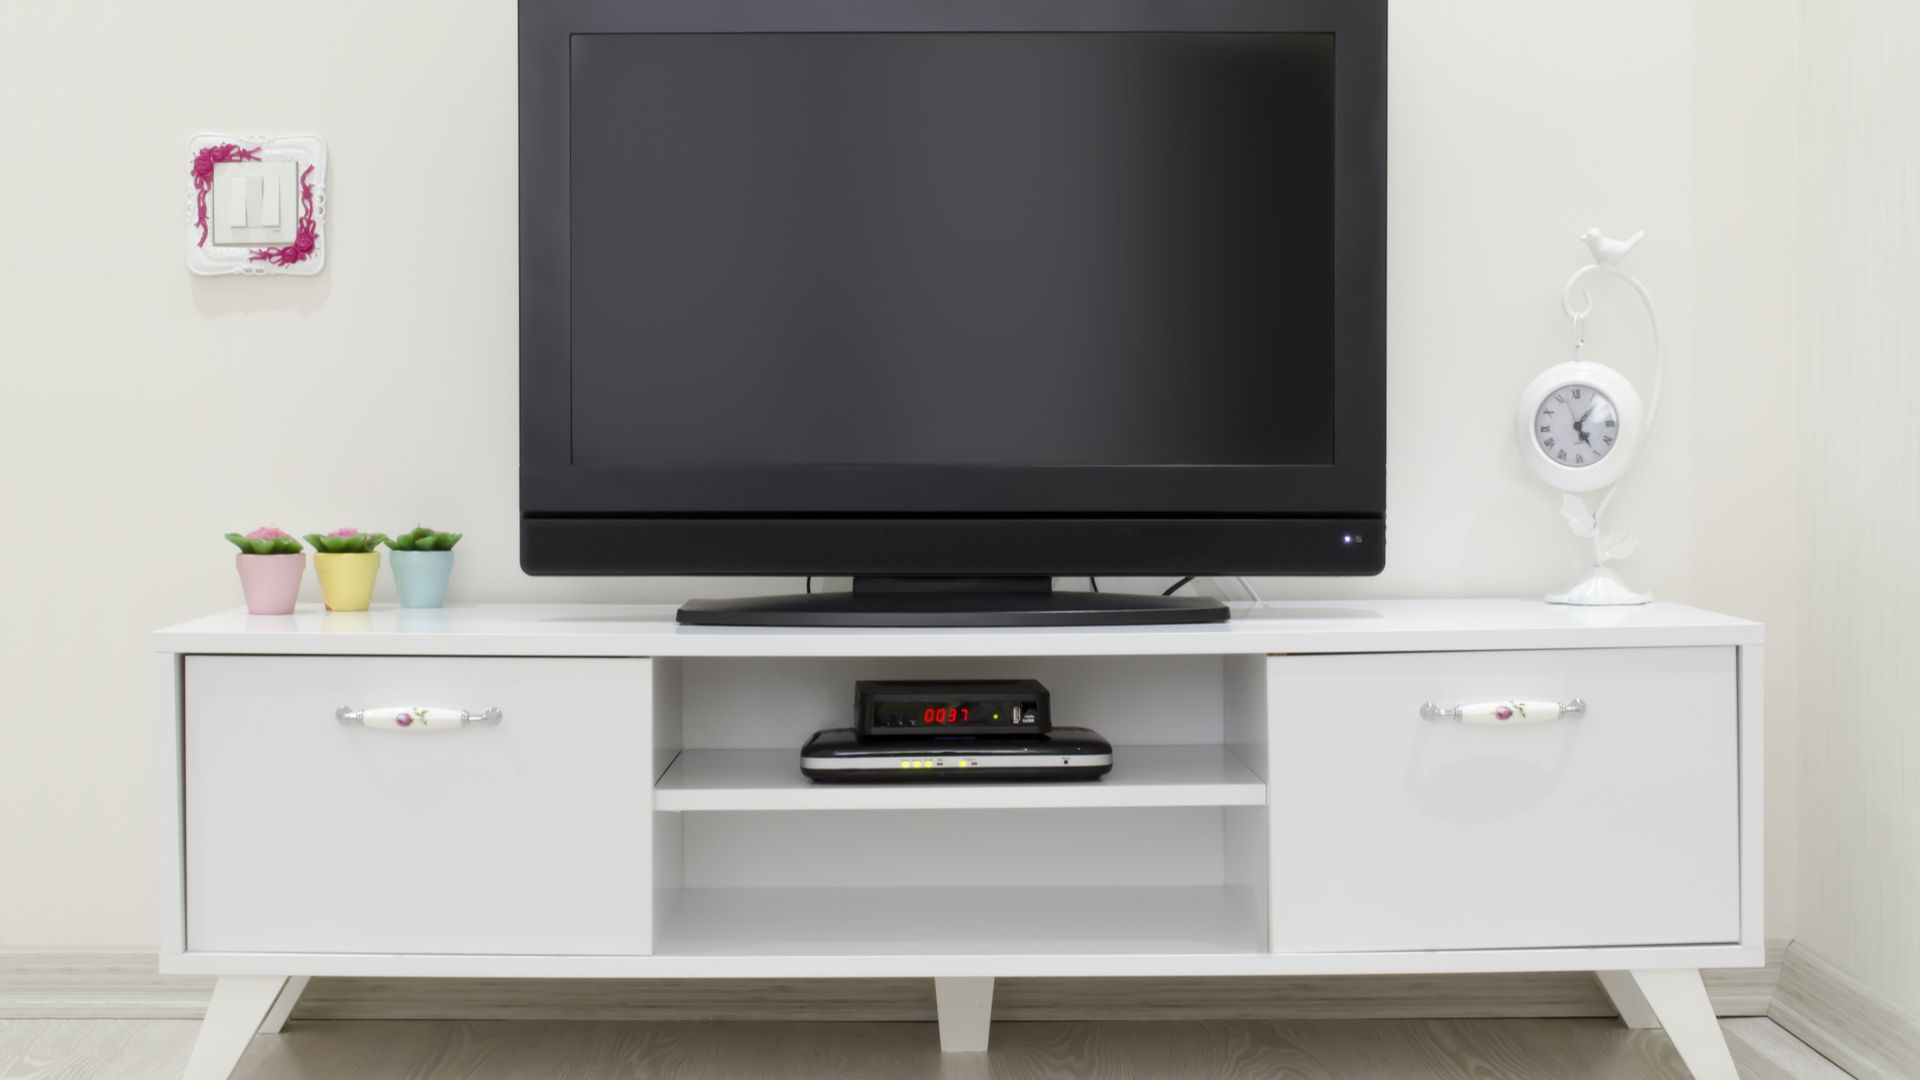 Table Basse Tv Comment Choisir Son Meuble Tv